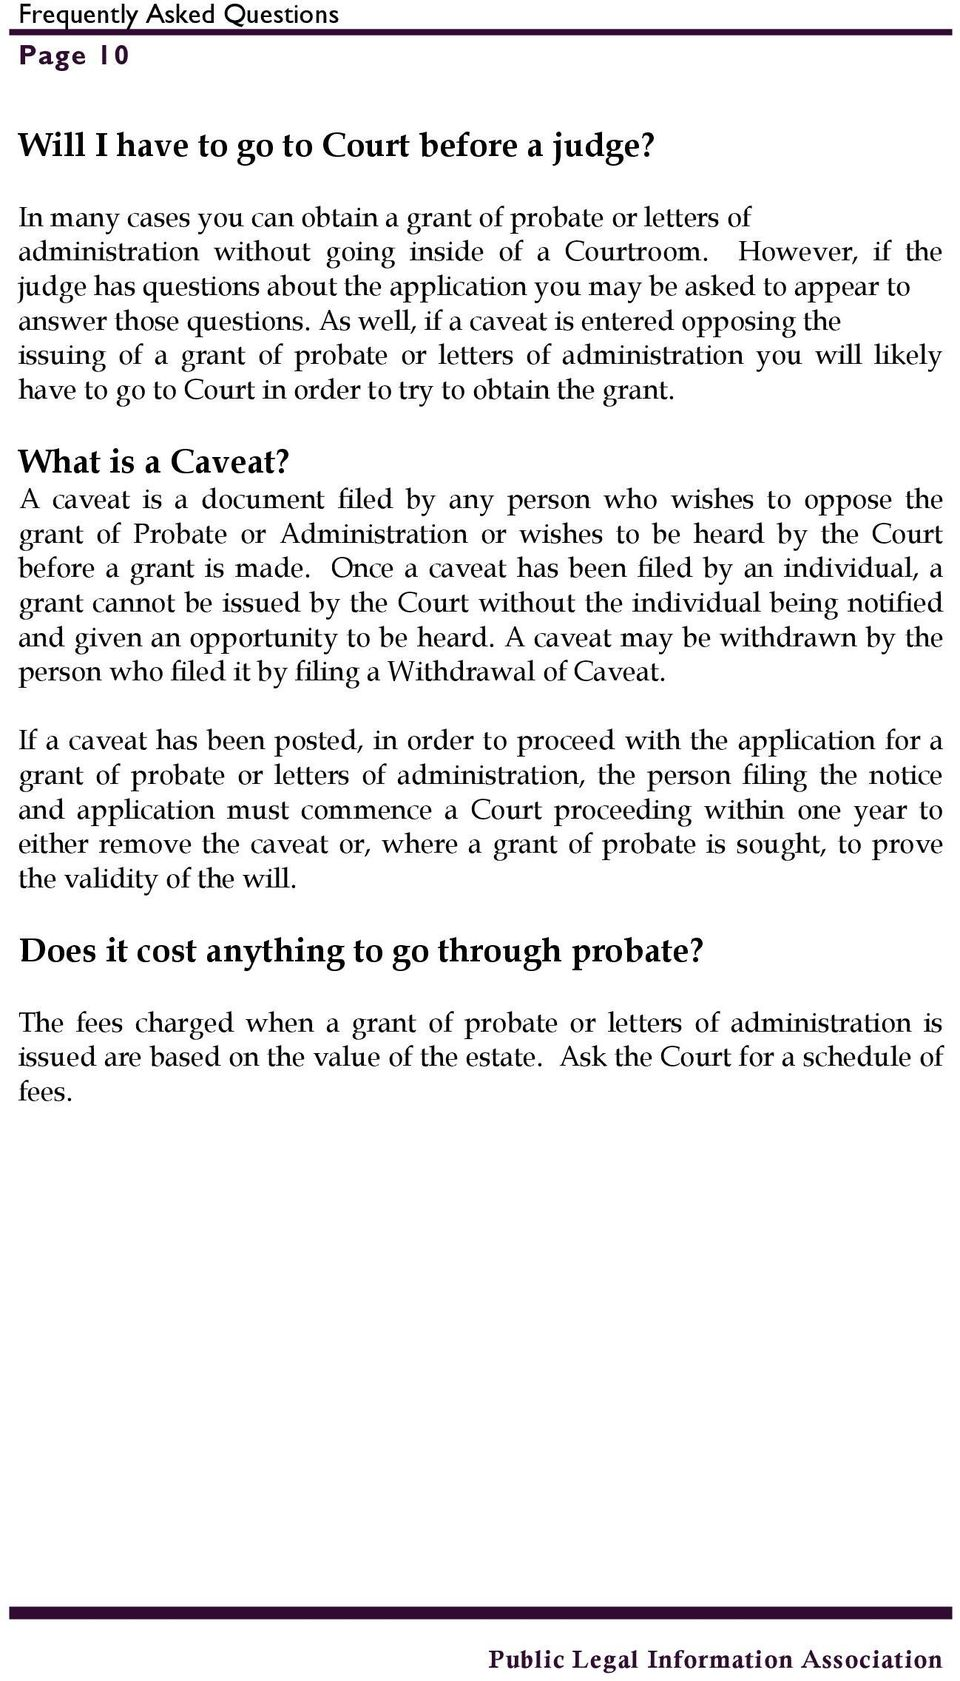 As well, if a caveat is entered opposing the issuing of a grant of probate or letters of administration you will likely have to go to Court in order to try to obtain the grant. What is a Caveat?